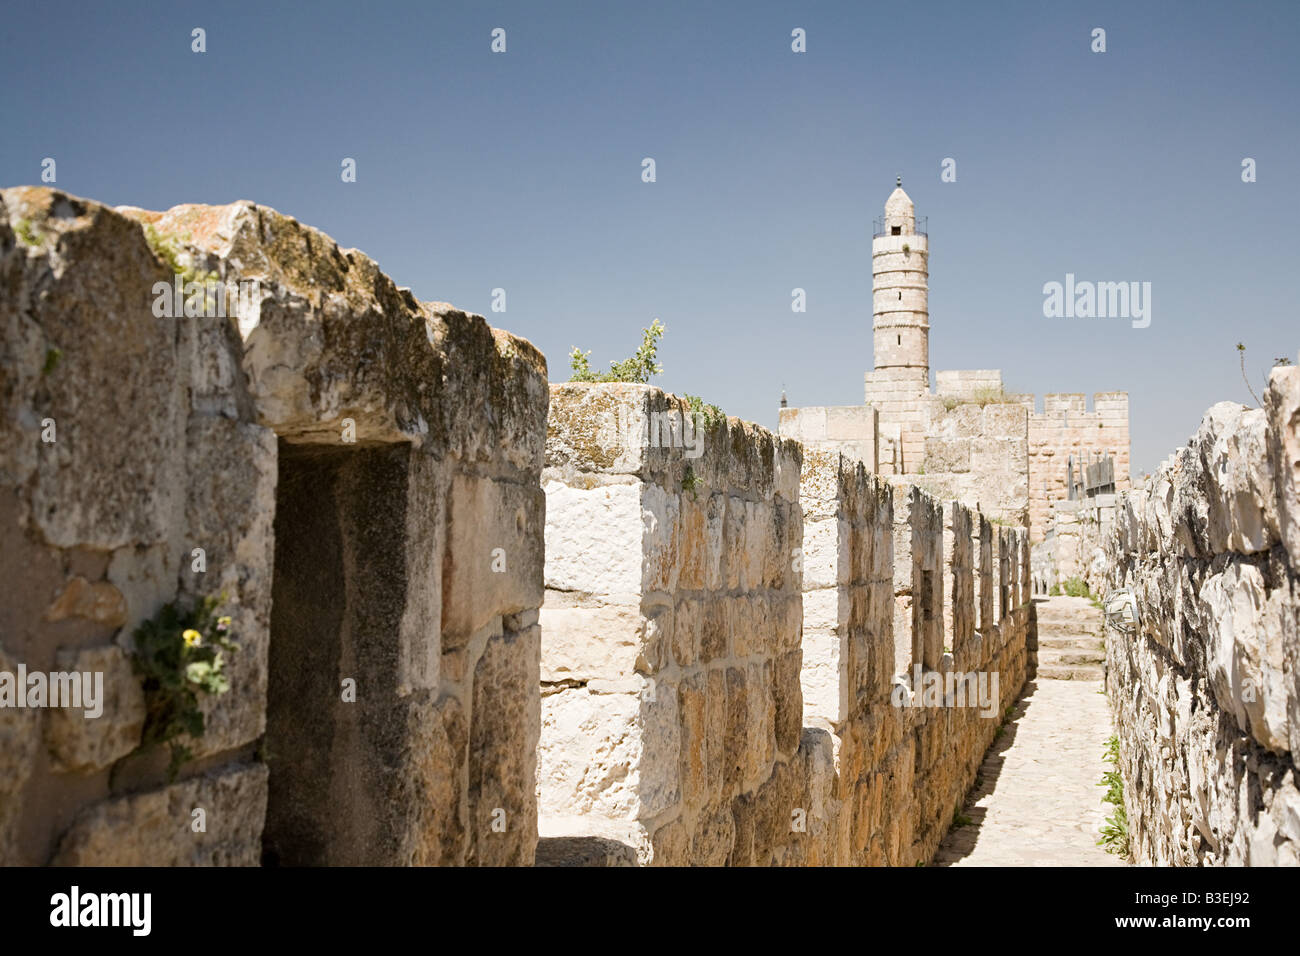 Tower of david - Stock Image